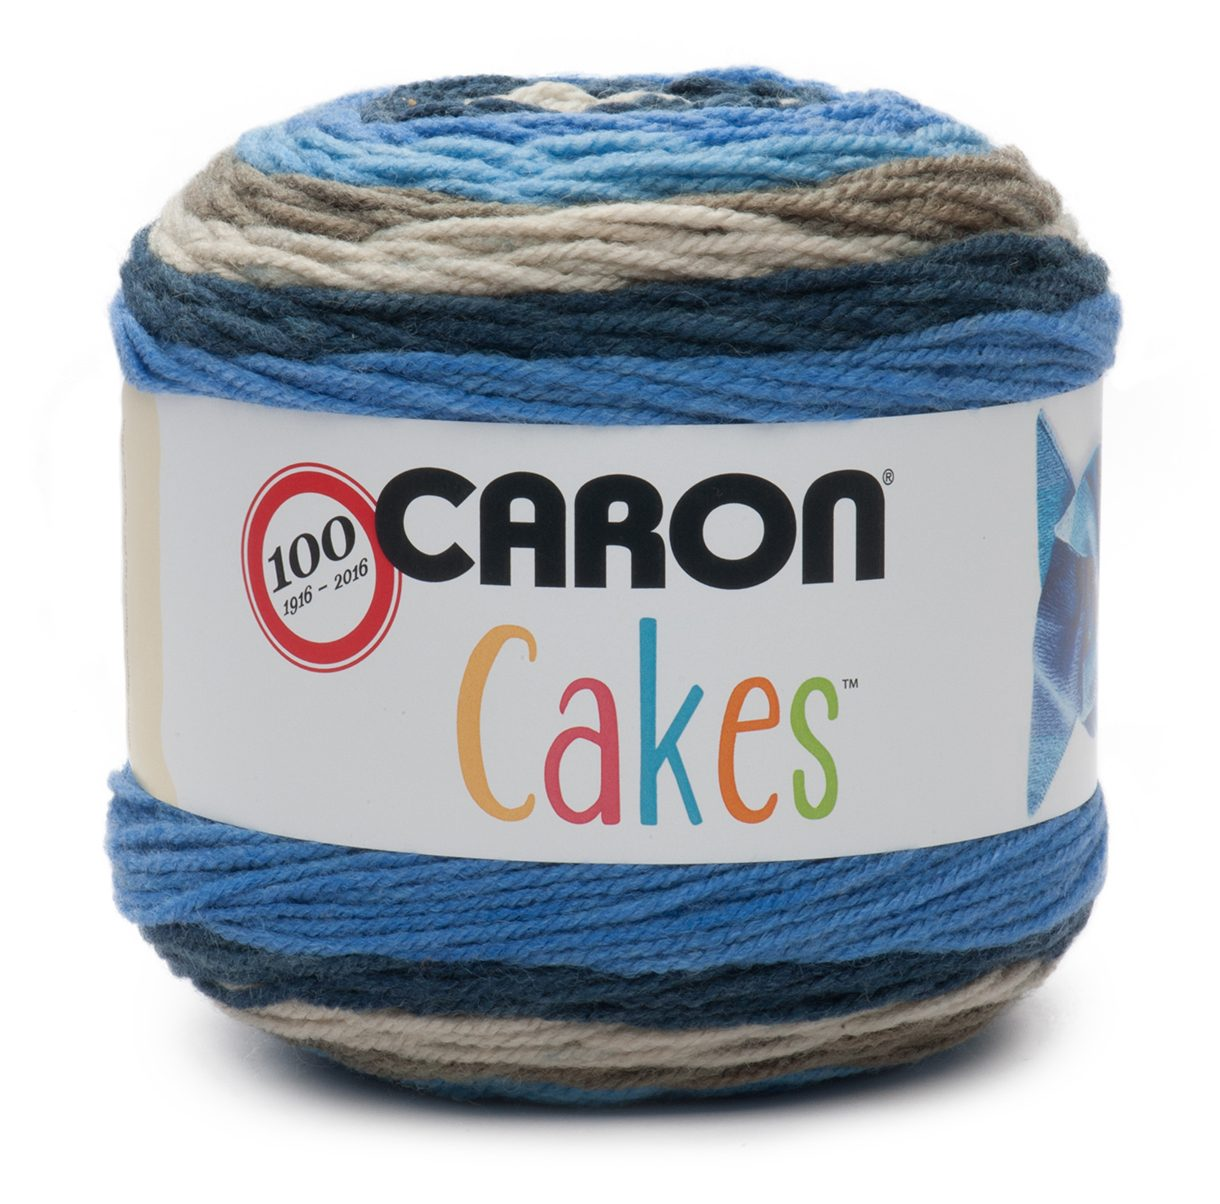 NEW Caron Cakes Berries and Cream - one of 8 new colorways for 2017